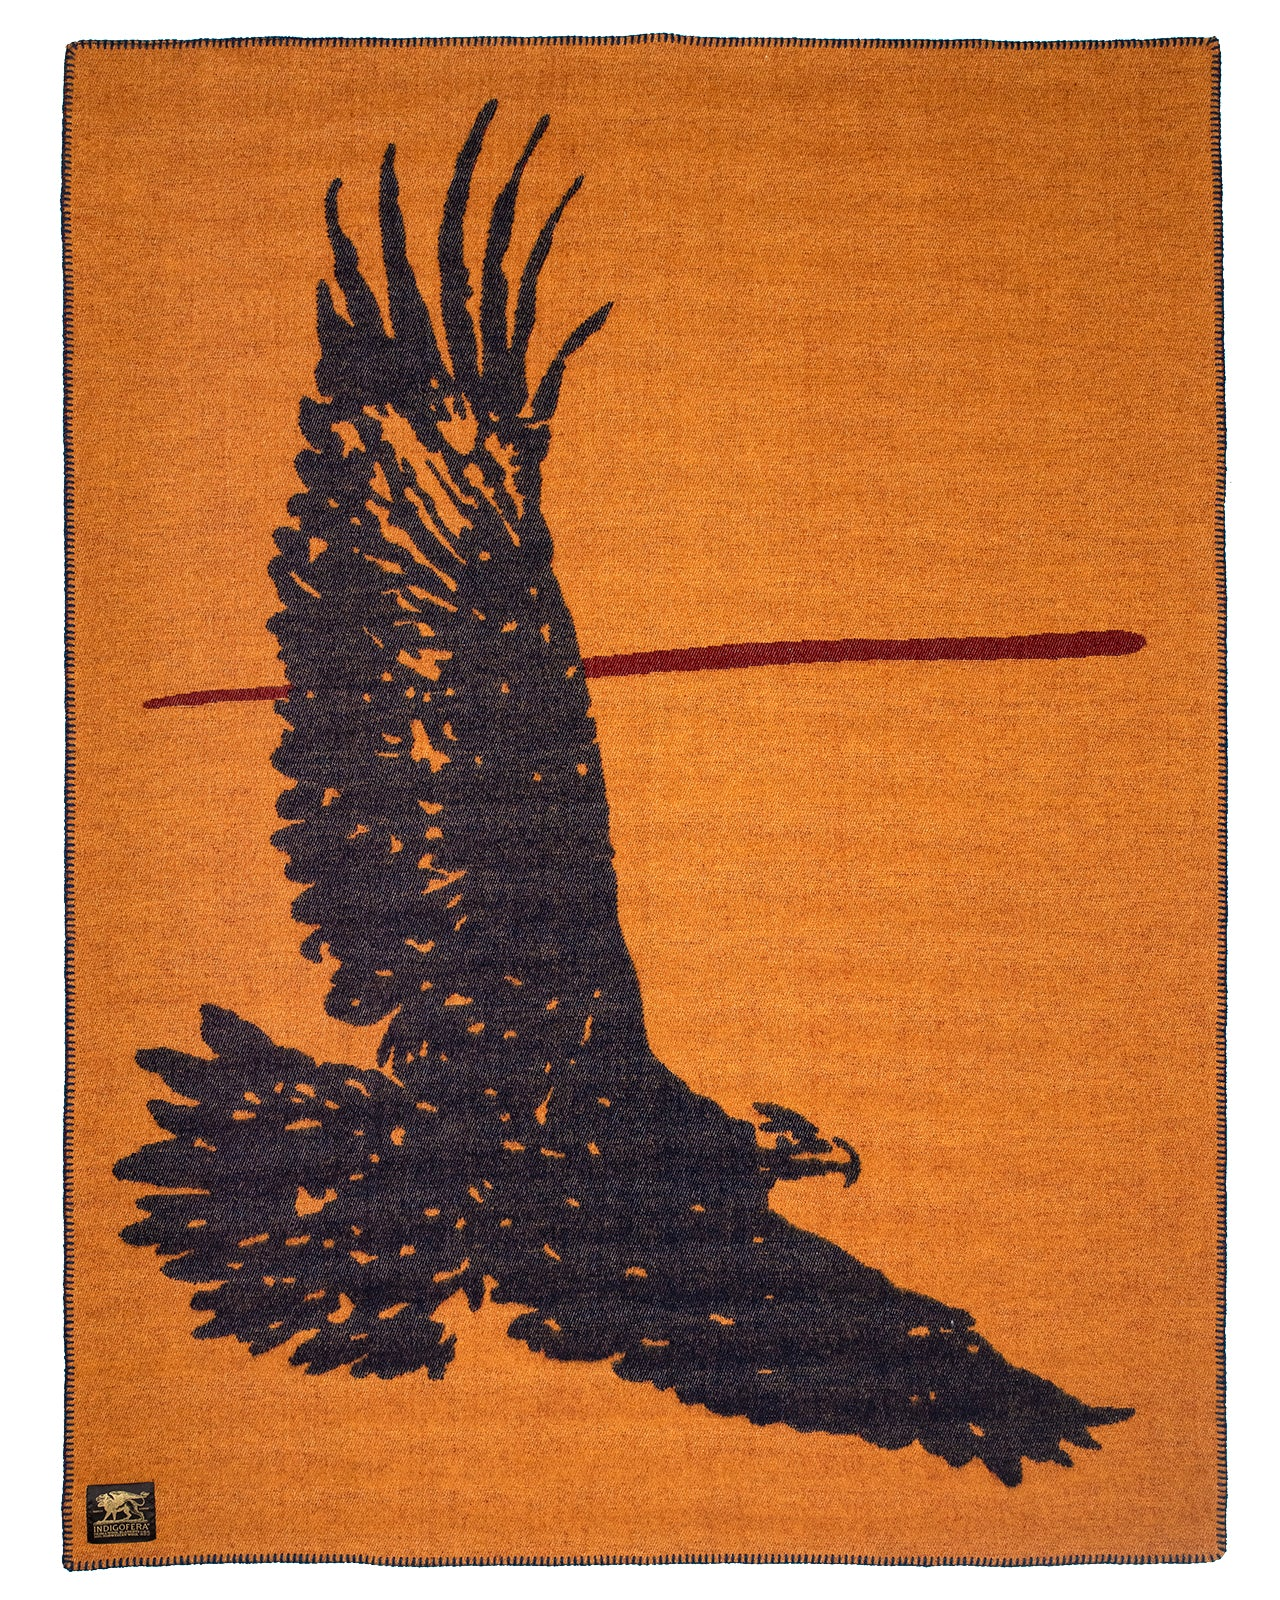 Indigofera Wool Blanket, Eagle, Orange